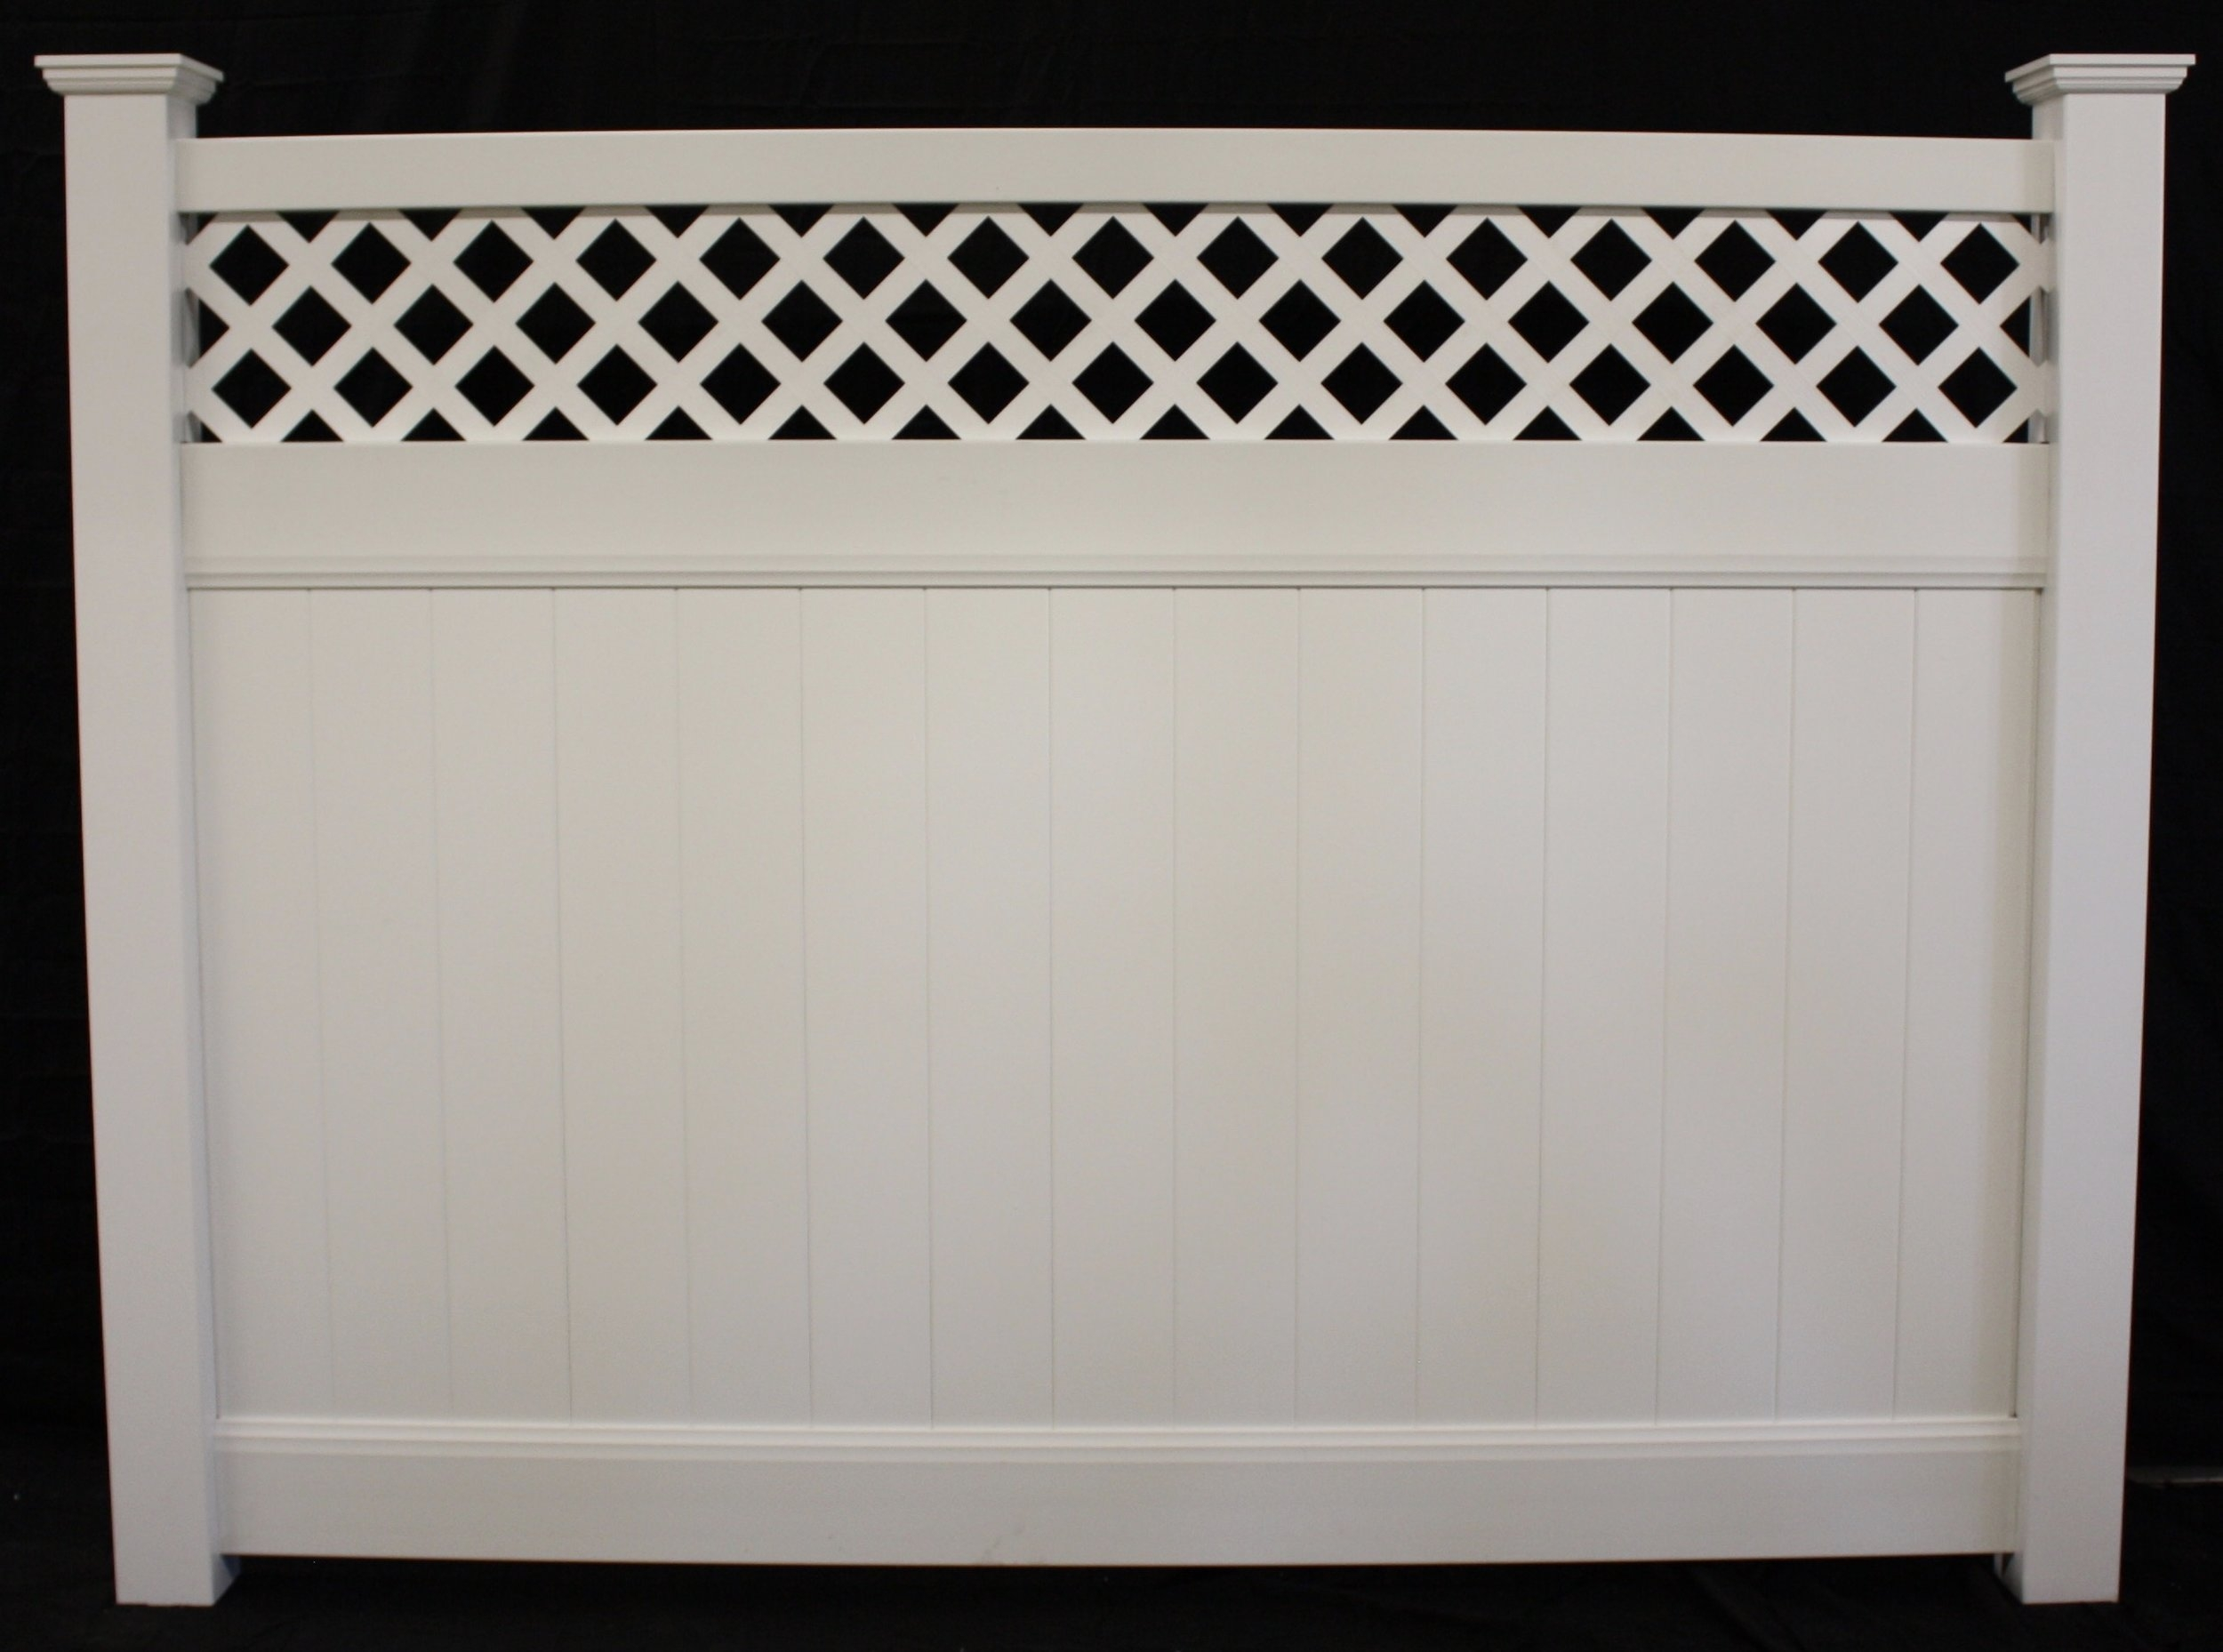 Lattice Top Privacy Vinyl Fence